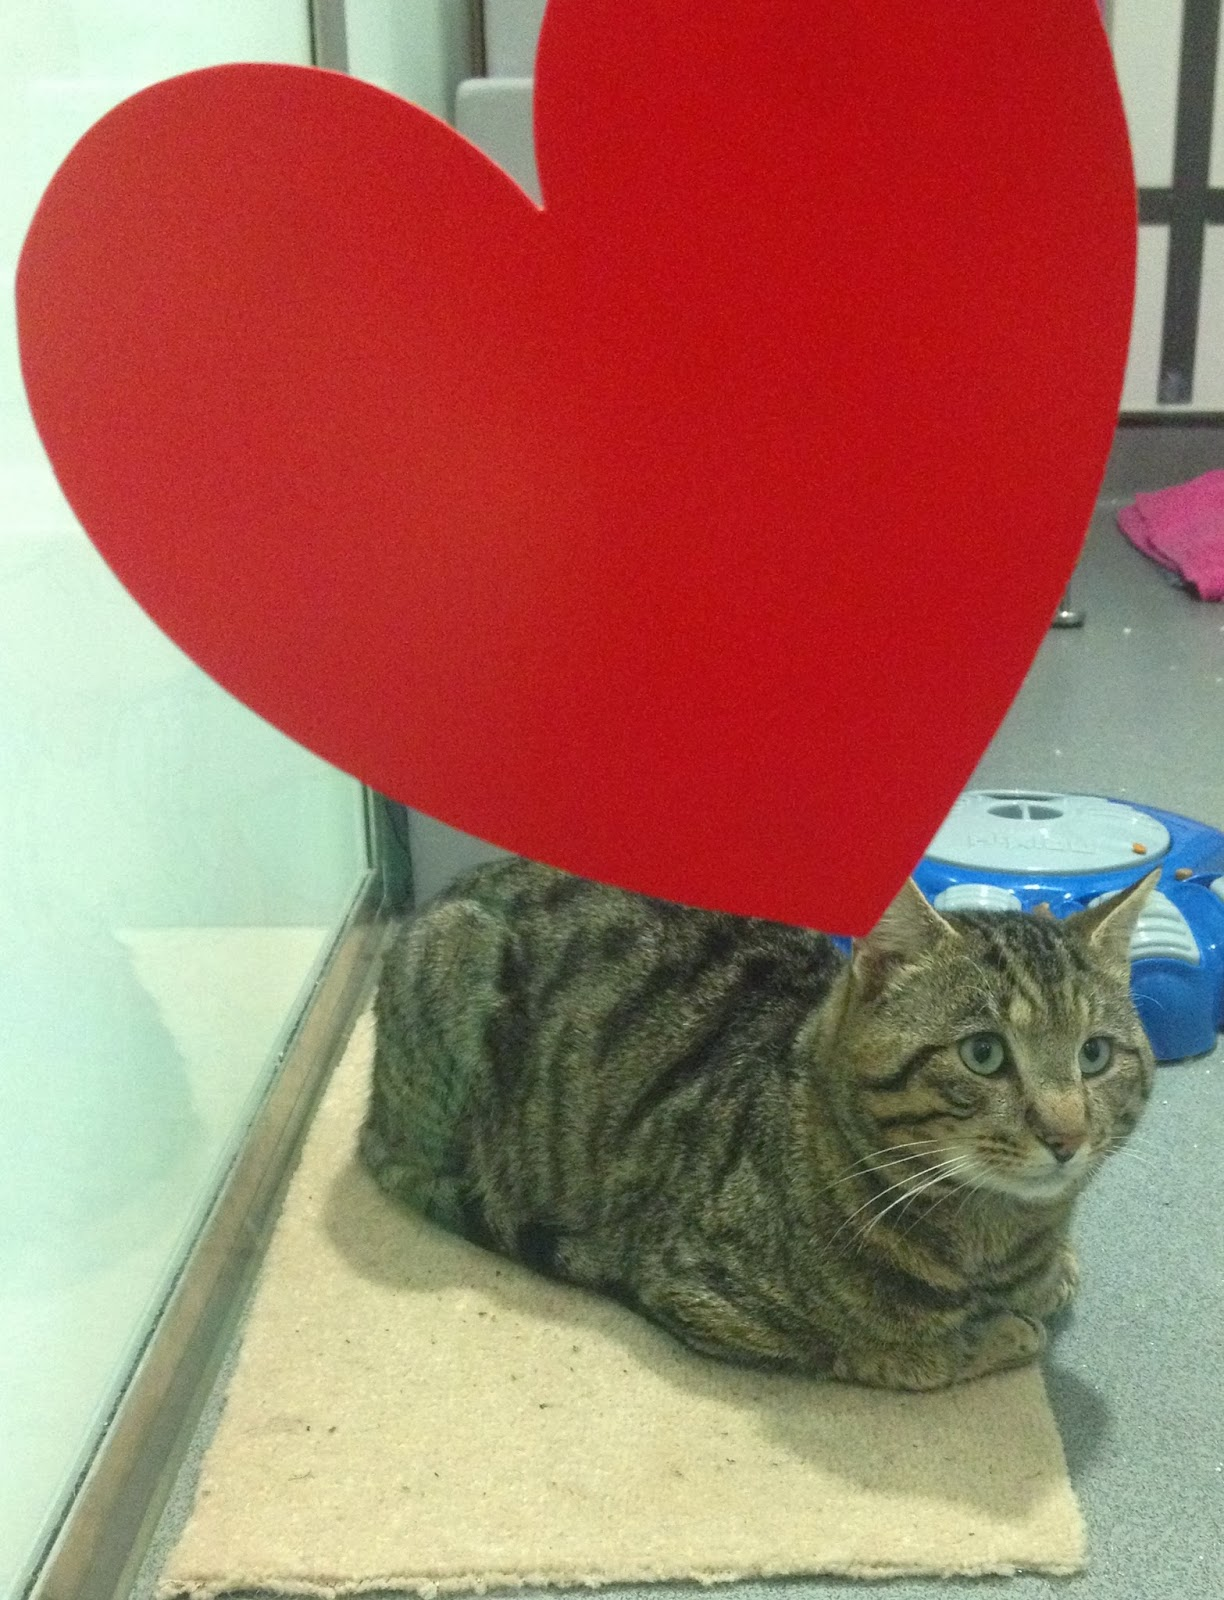 Feline Lonely at Battersea Cats Home